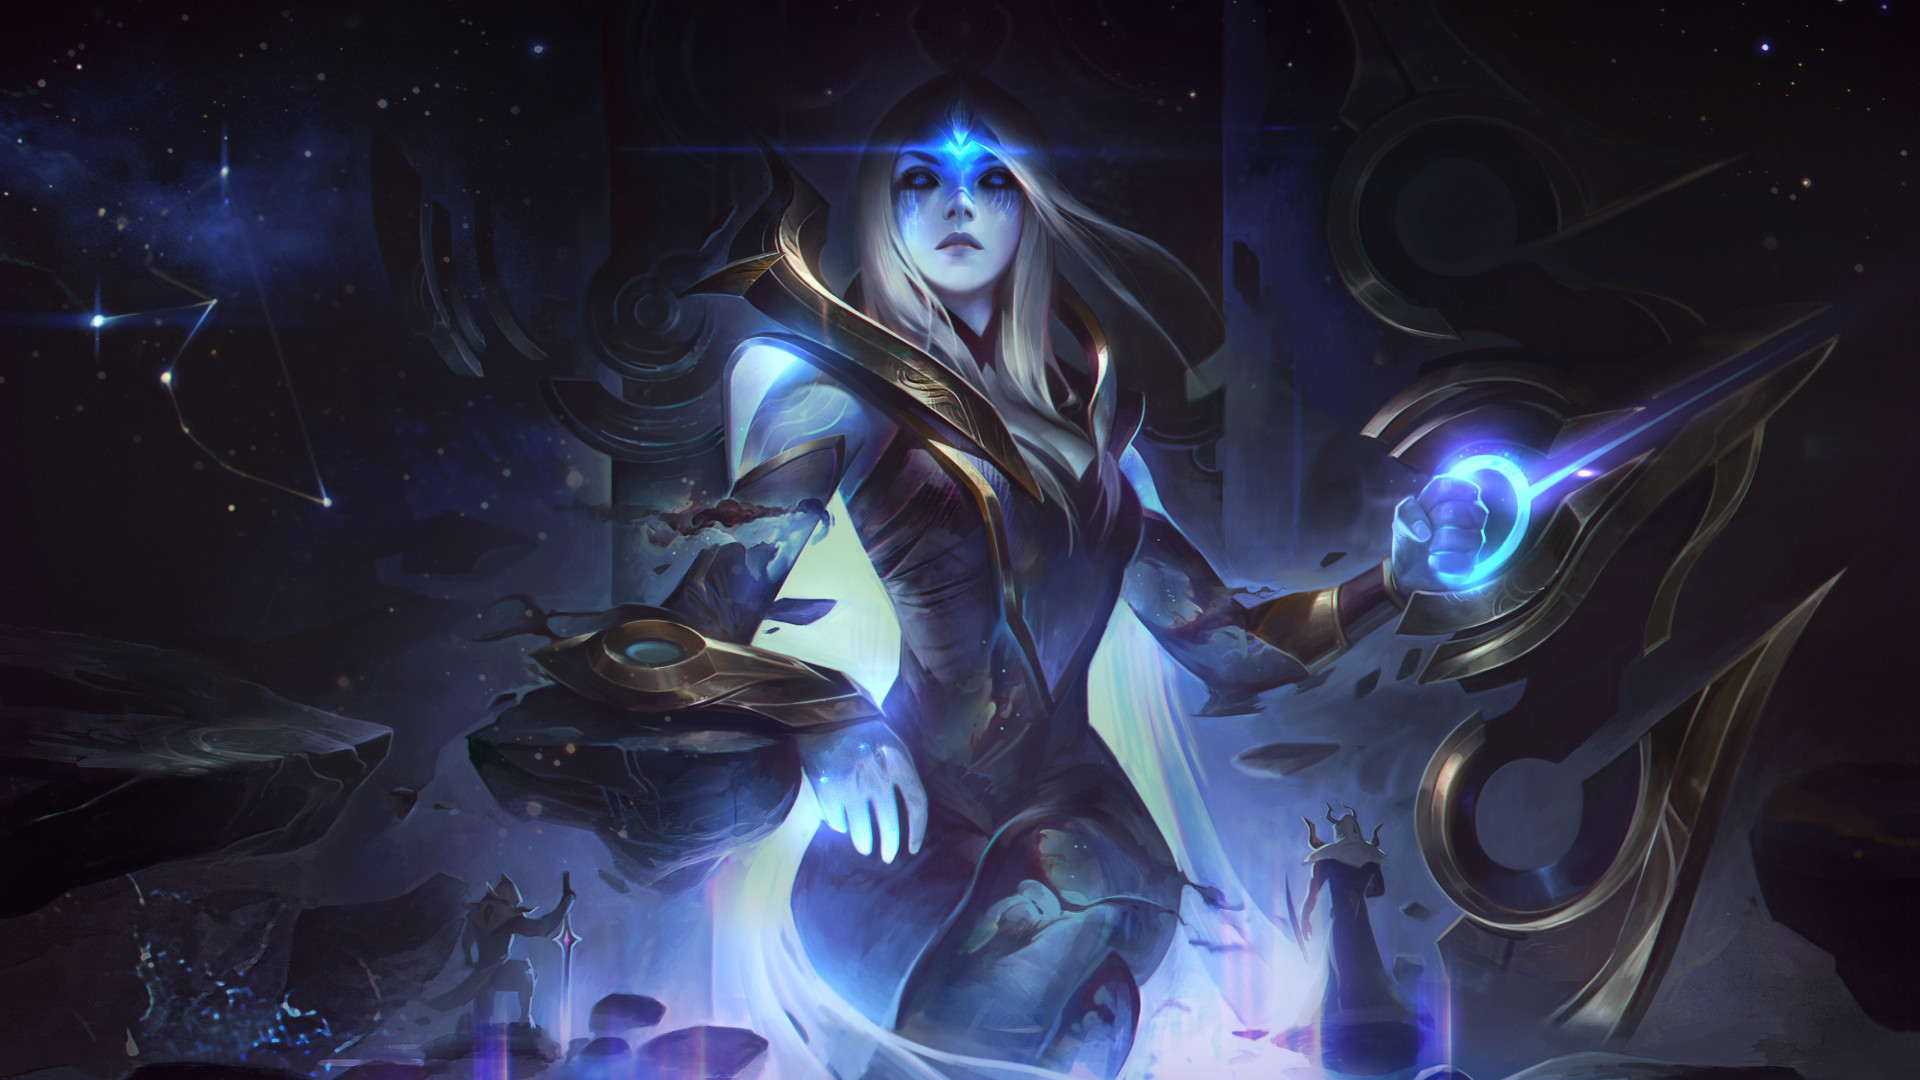 Cosmic Queen Ashe HD Wallpaper | Background Image | 1920x1080 | ID:1017907  - Wallpaper Abyss